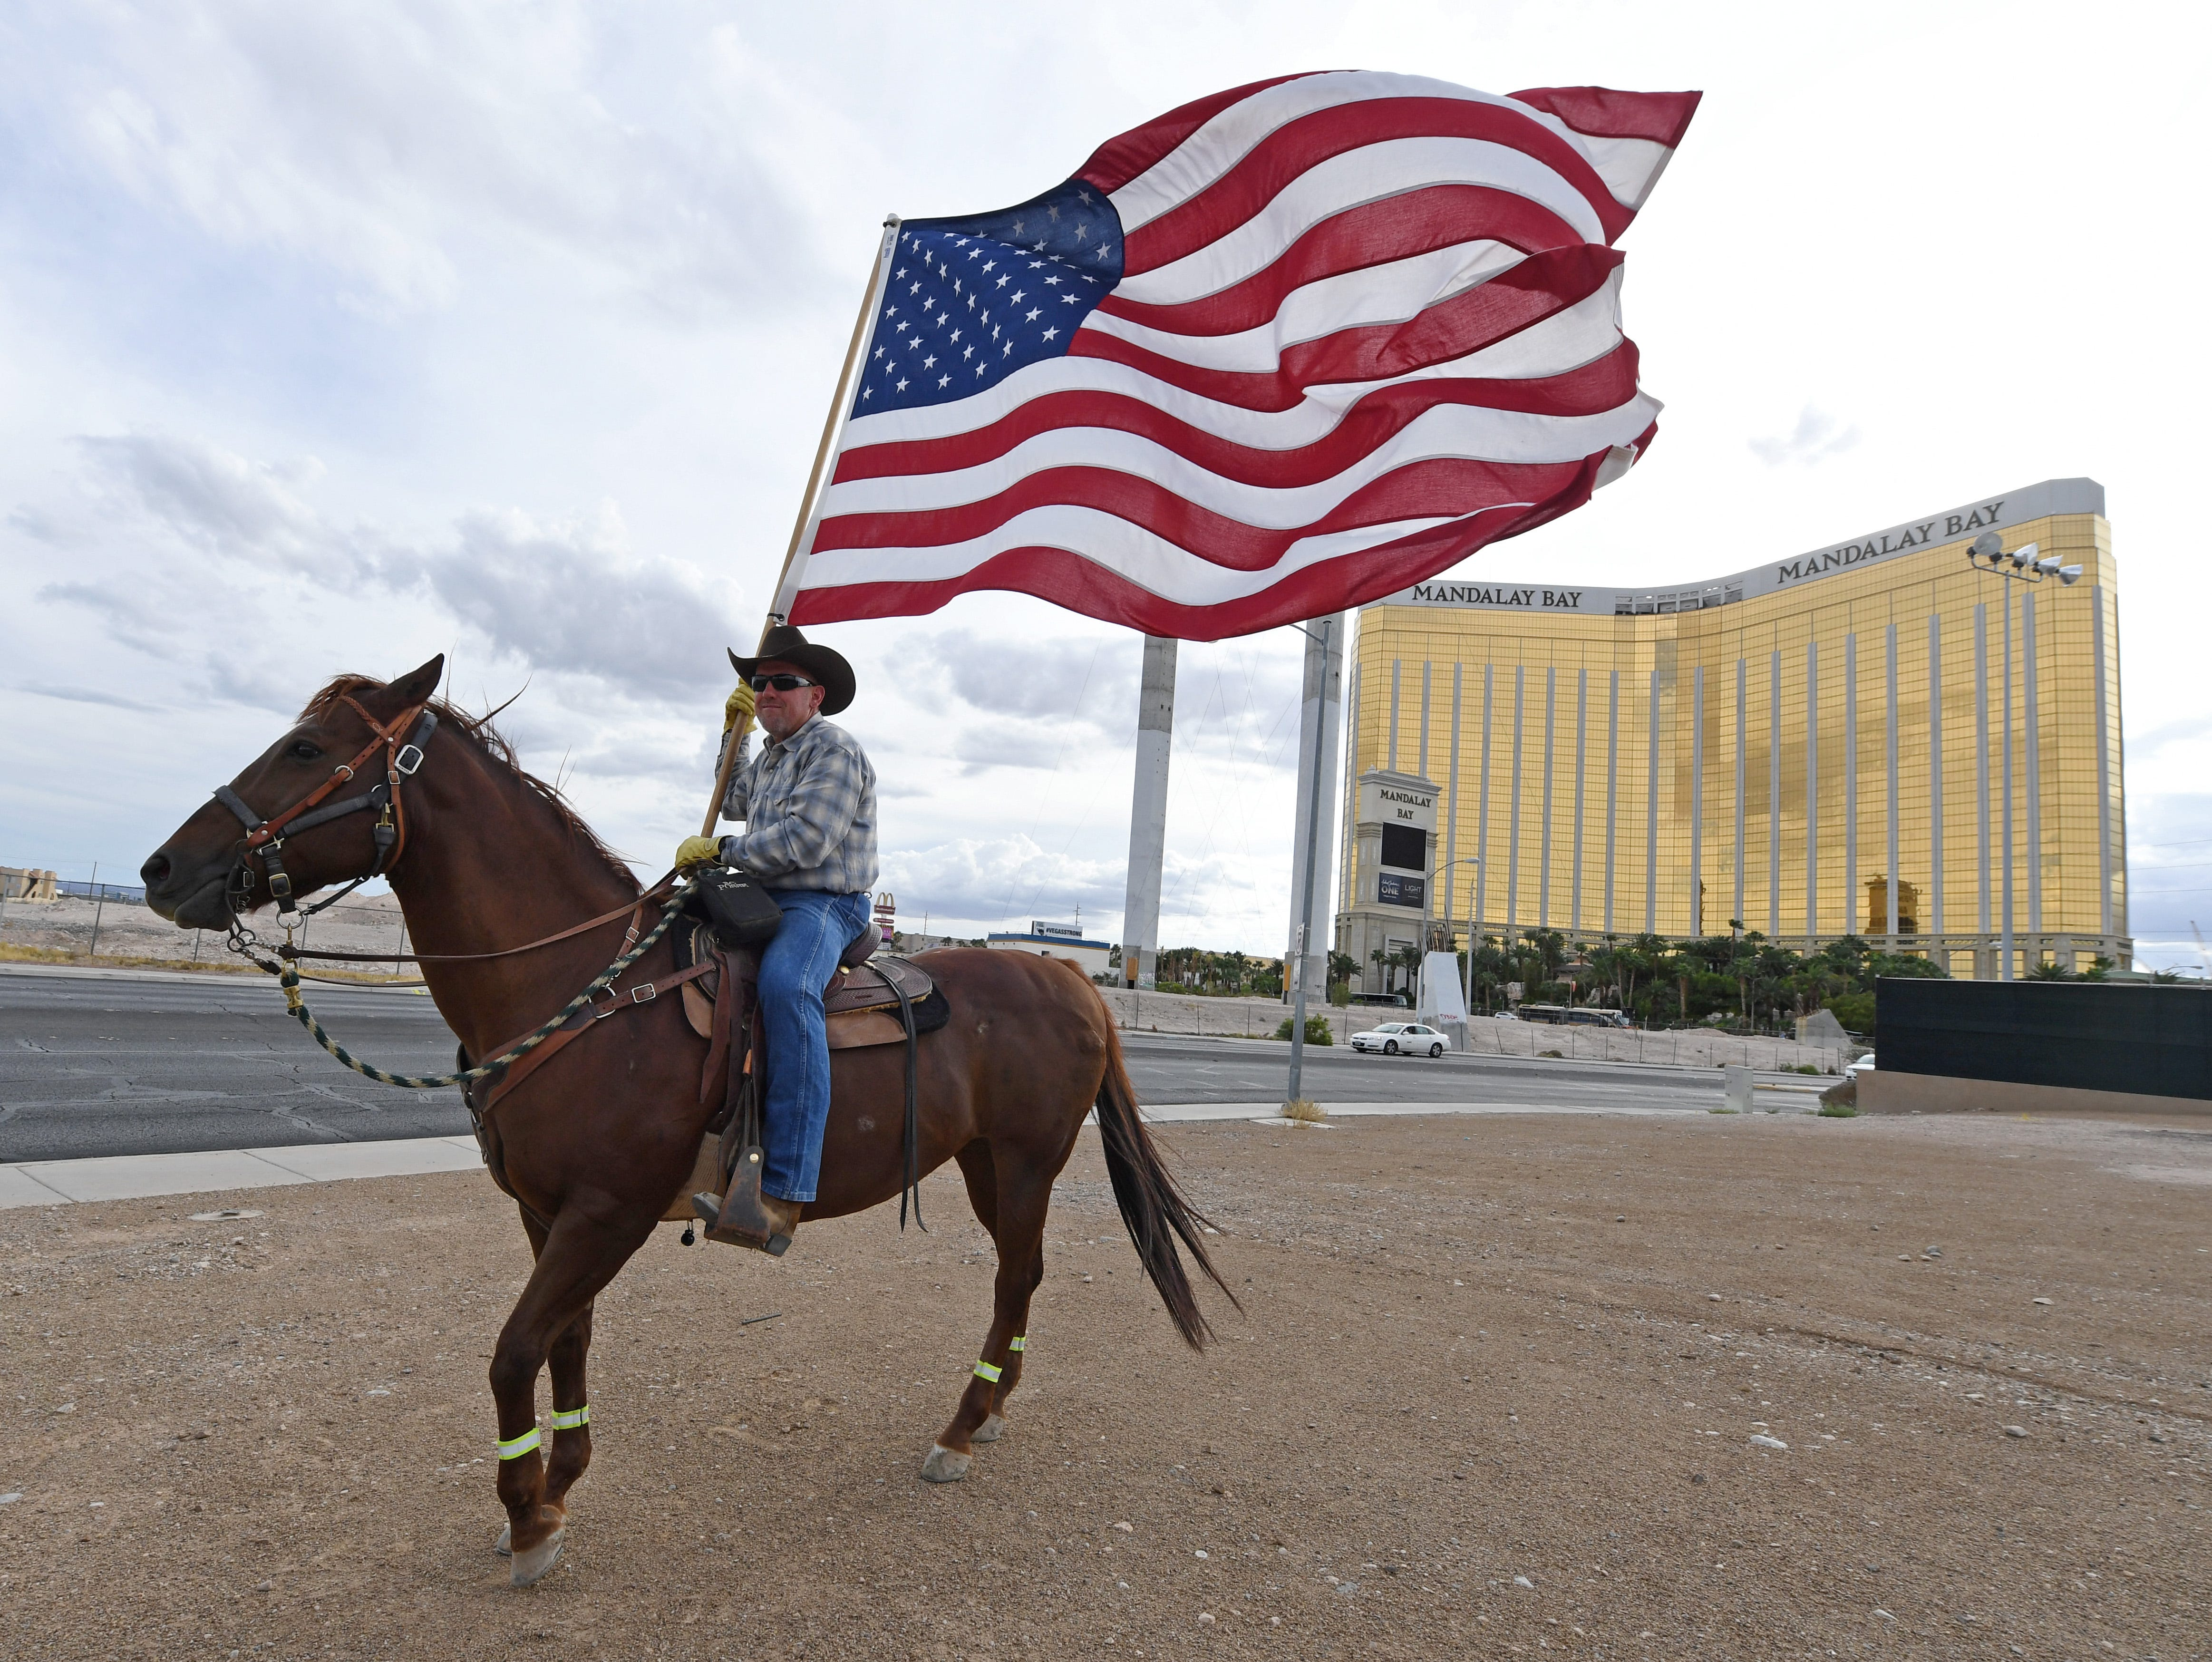 Rafael Sarabia of Nevada holds an American flag as he rides his horse Red Sonja outside the Las Vegas Village across from Mandalay Bay Resort and Casino as a tribute to those killed in last year's massacre at the site on Oct. 1, 2018 in Las Vegas, Nev. On October 1, 2017, Stephen Paddock opened fire from the 32nd floor of Mandalay Bay on the Route 91 Harvest country music festival in Las Vegas killing 58 people and injuring more than 800 in the deadliest mass shooting event in U.S. history.